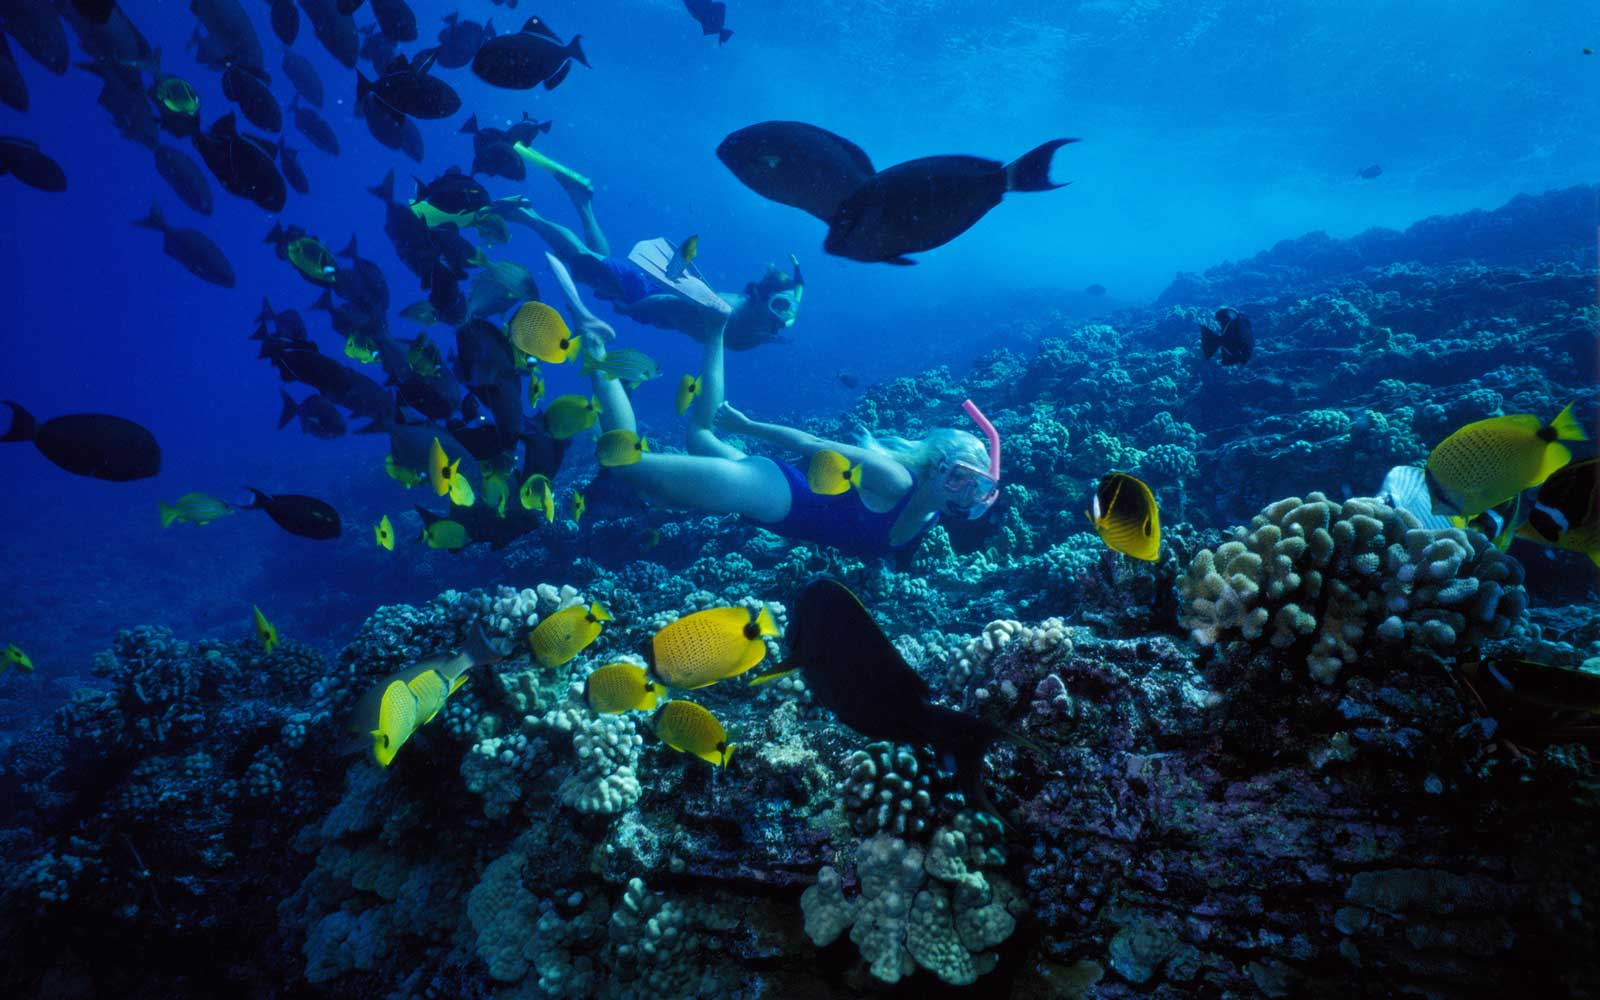 Molokini woman snorkels over reef yellow butterflyfish and triggerfish, Hawaii Maui